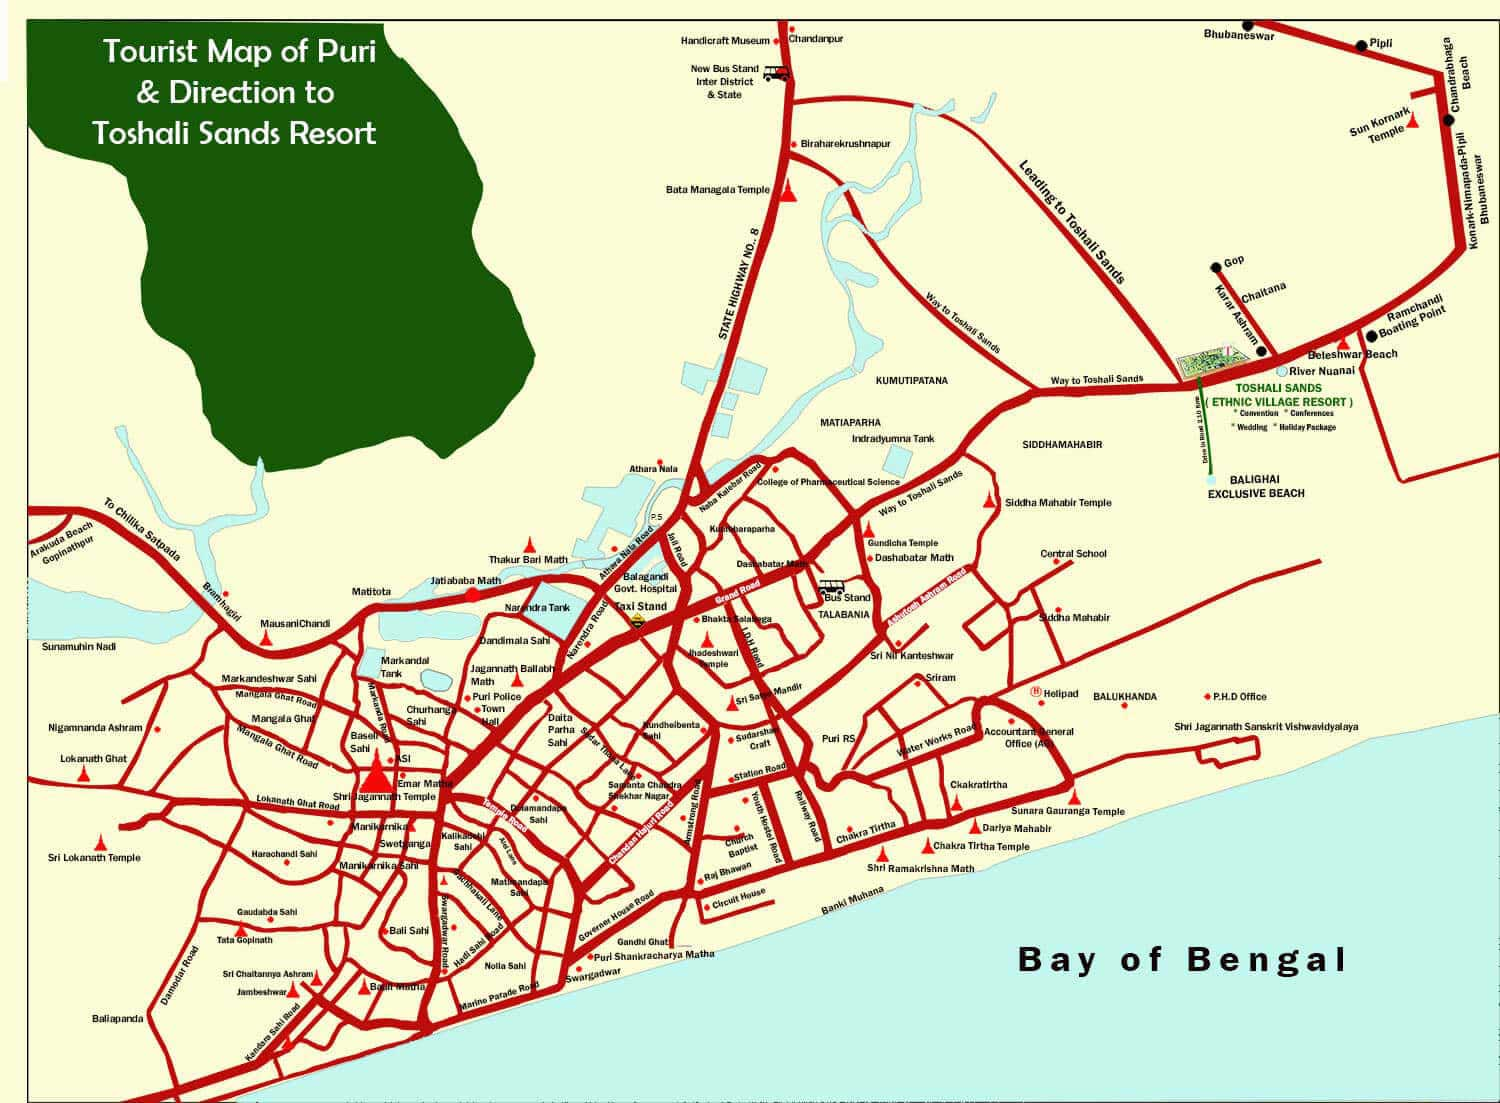 puri road map